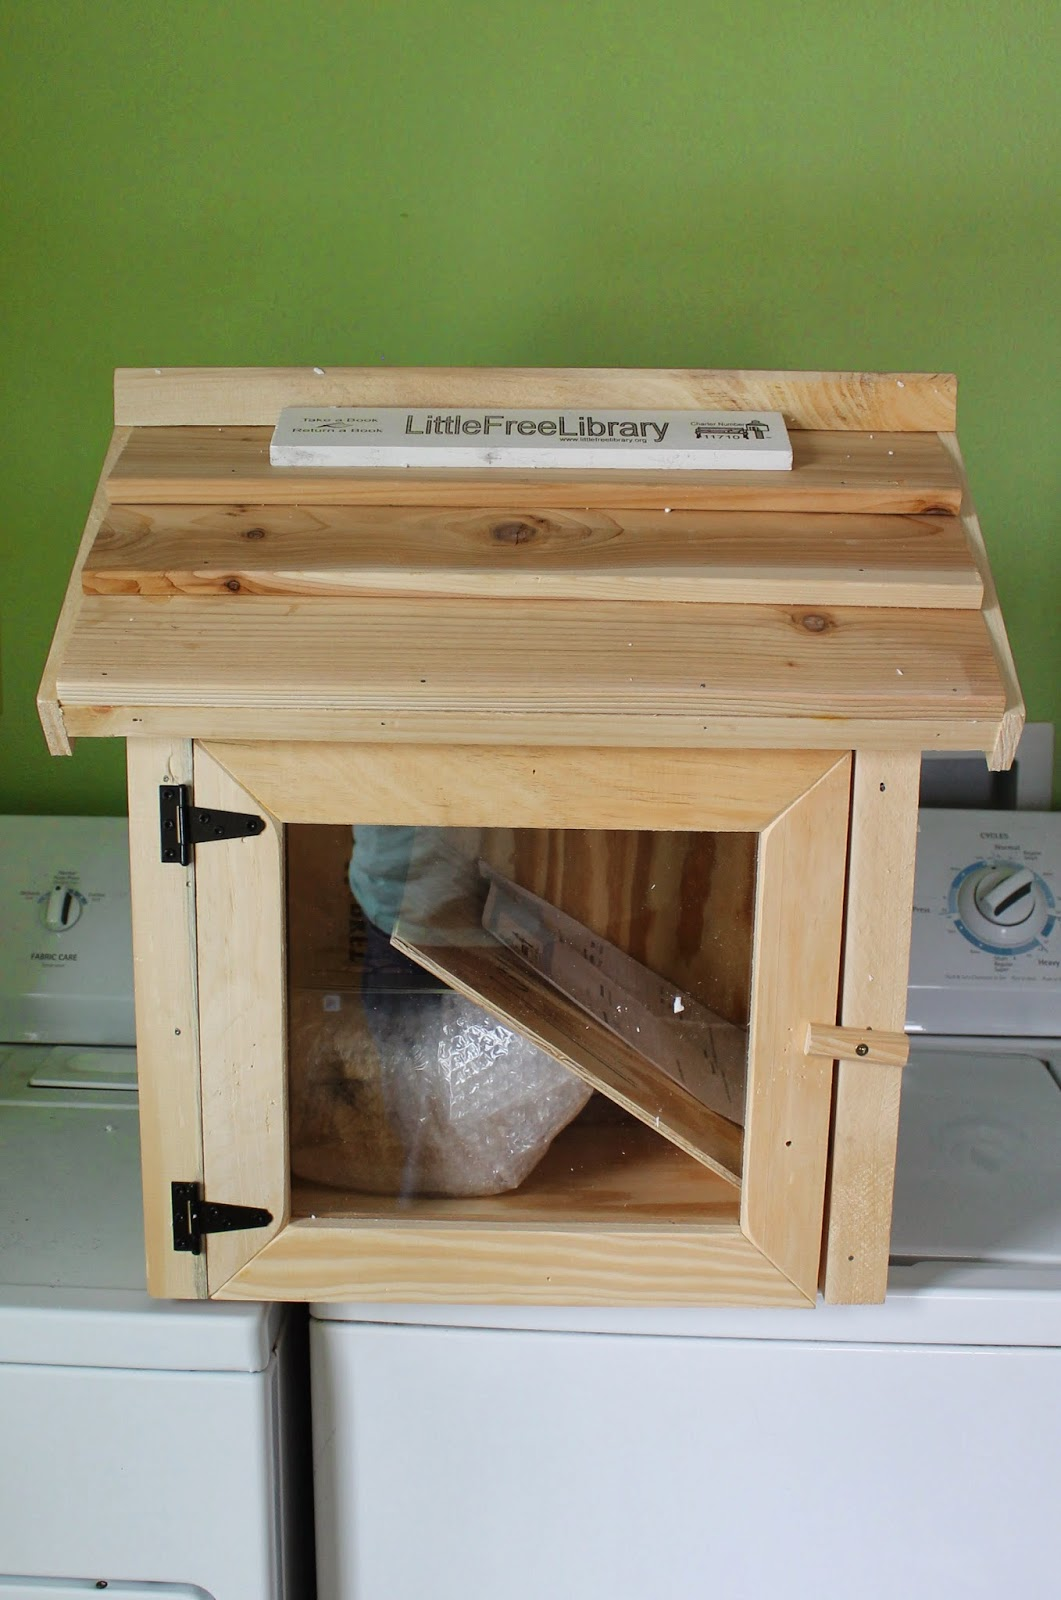 Little Free Library coming to Latimer, Iowa